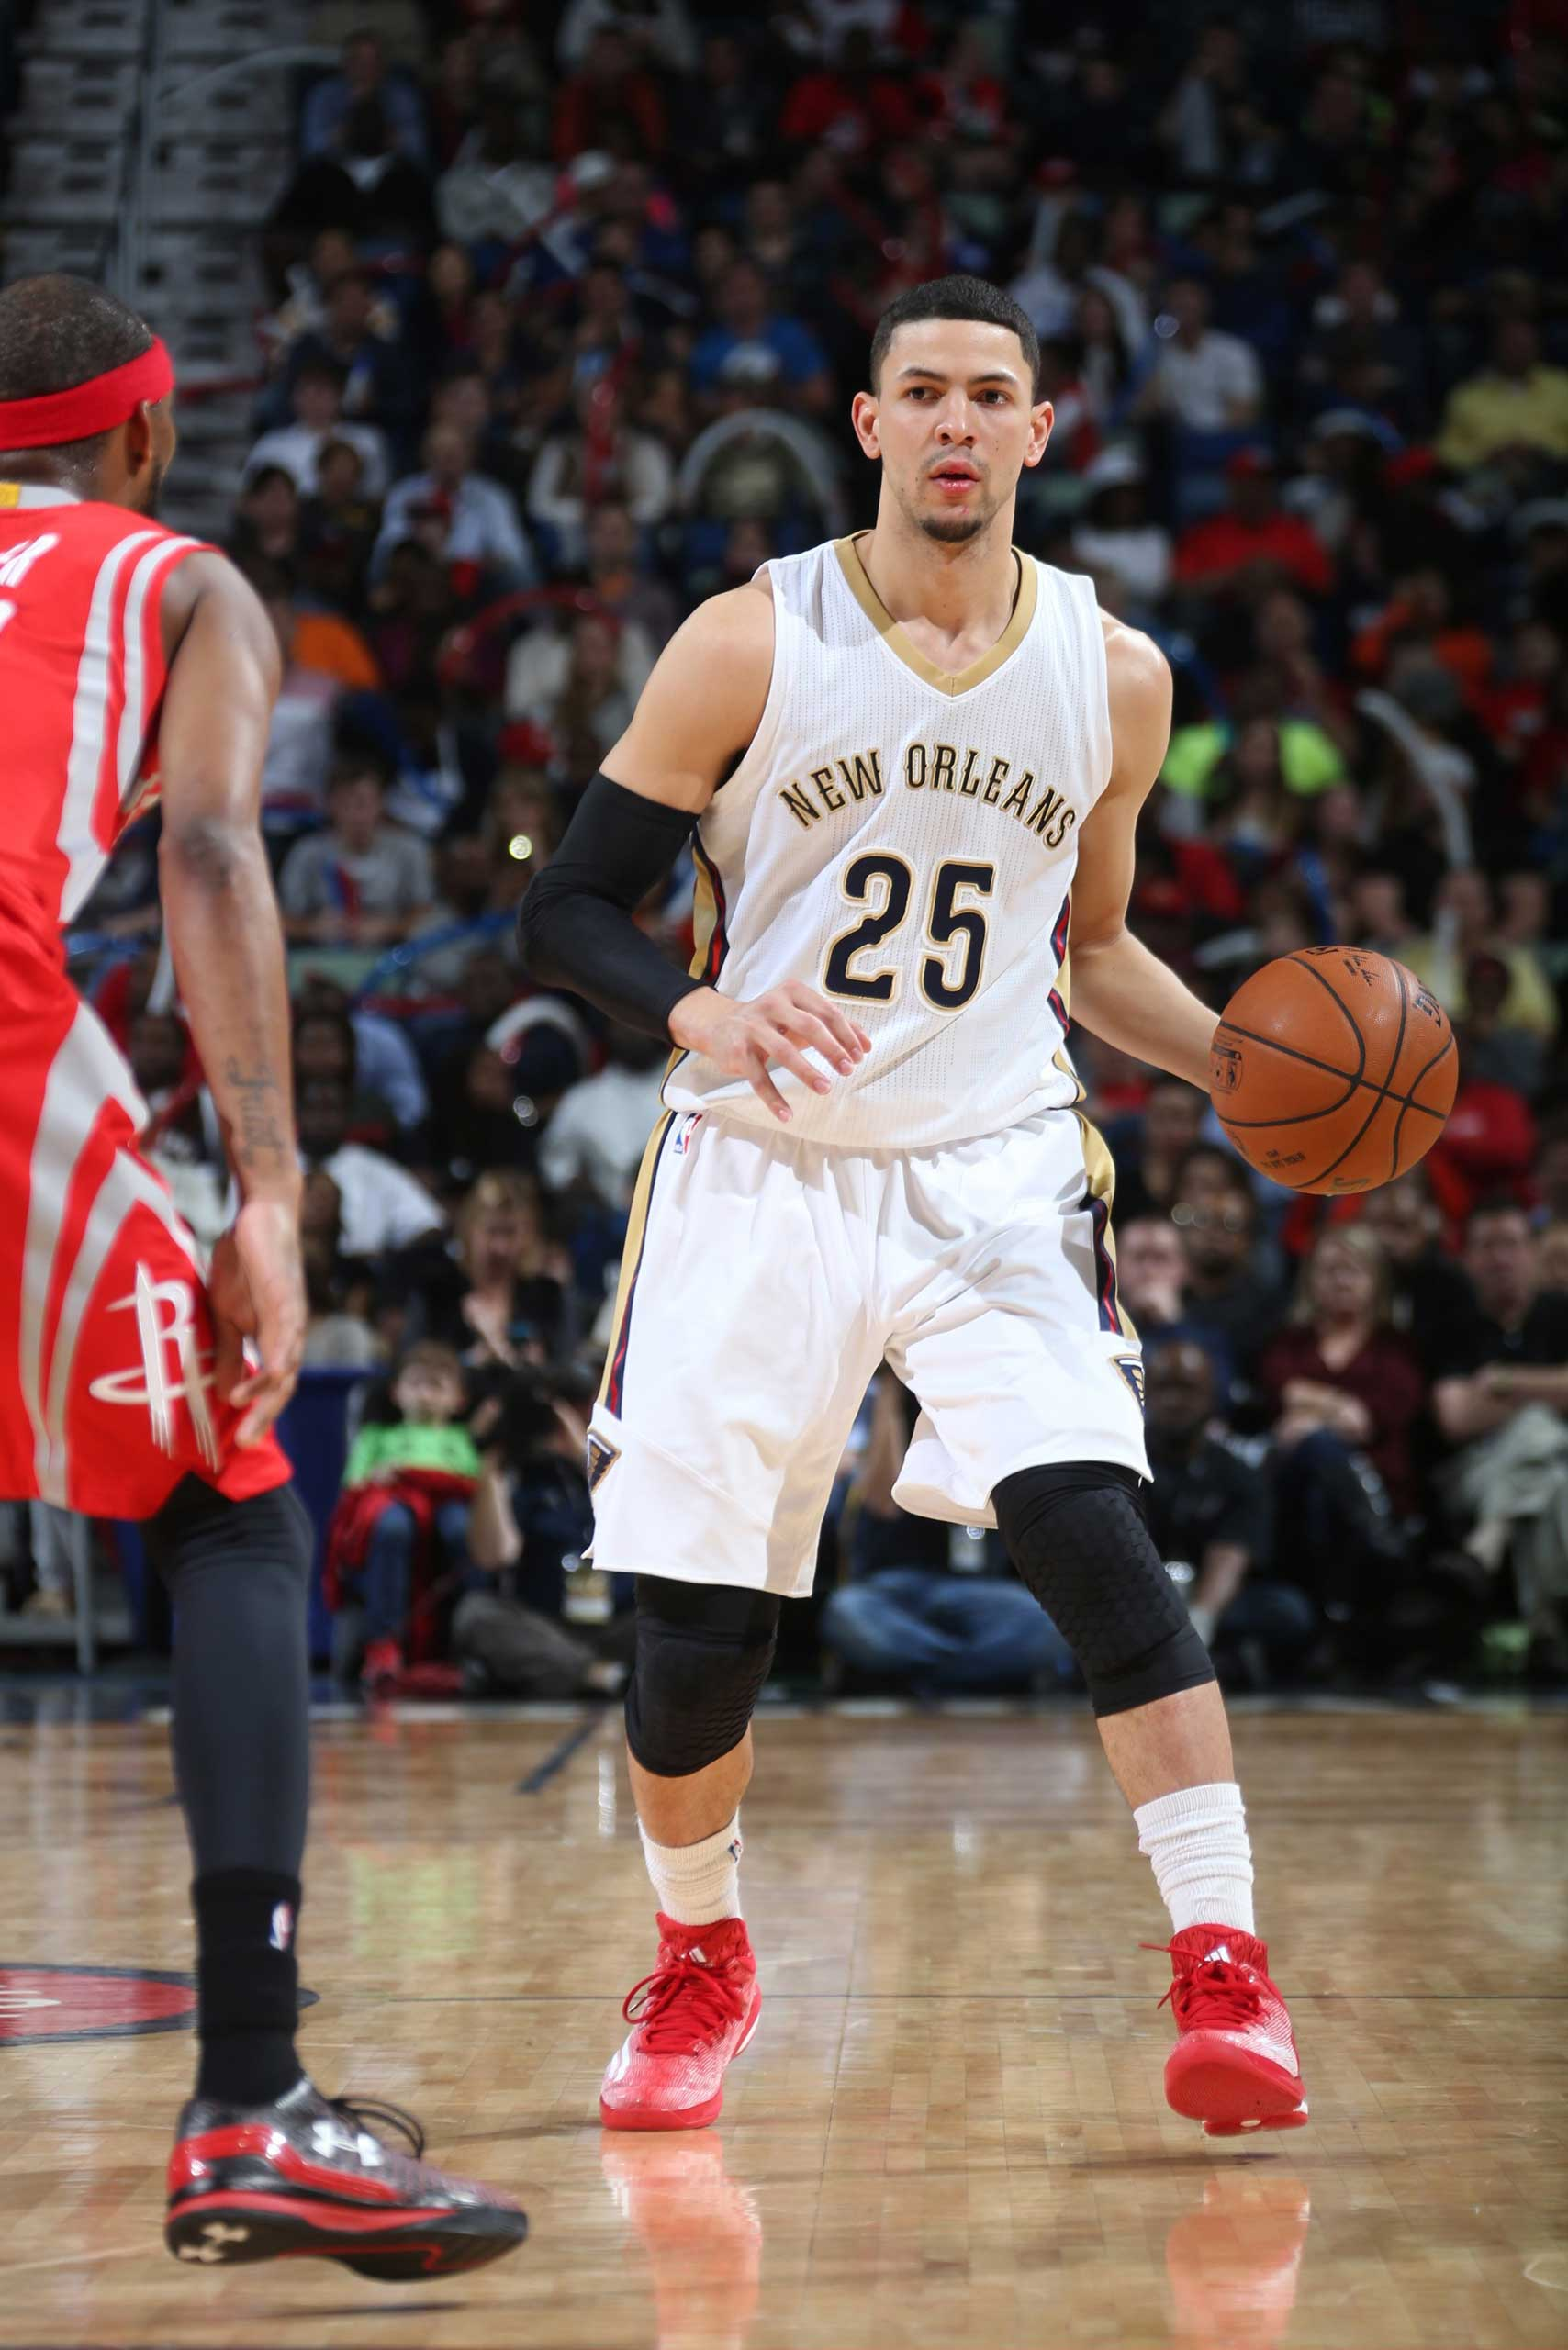 Austin Rivers of the New Orleans Pelicans handles the ball against the Houston Rockets on Jan, 2, 2015 at Smoothie King Center in New Orleans.